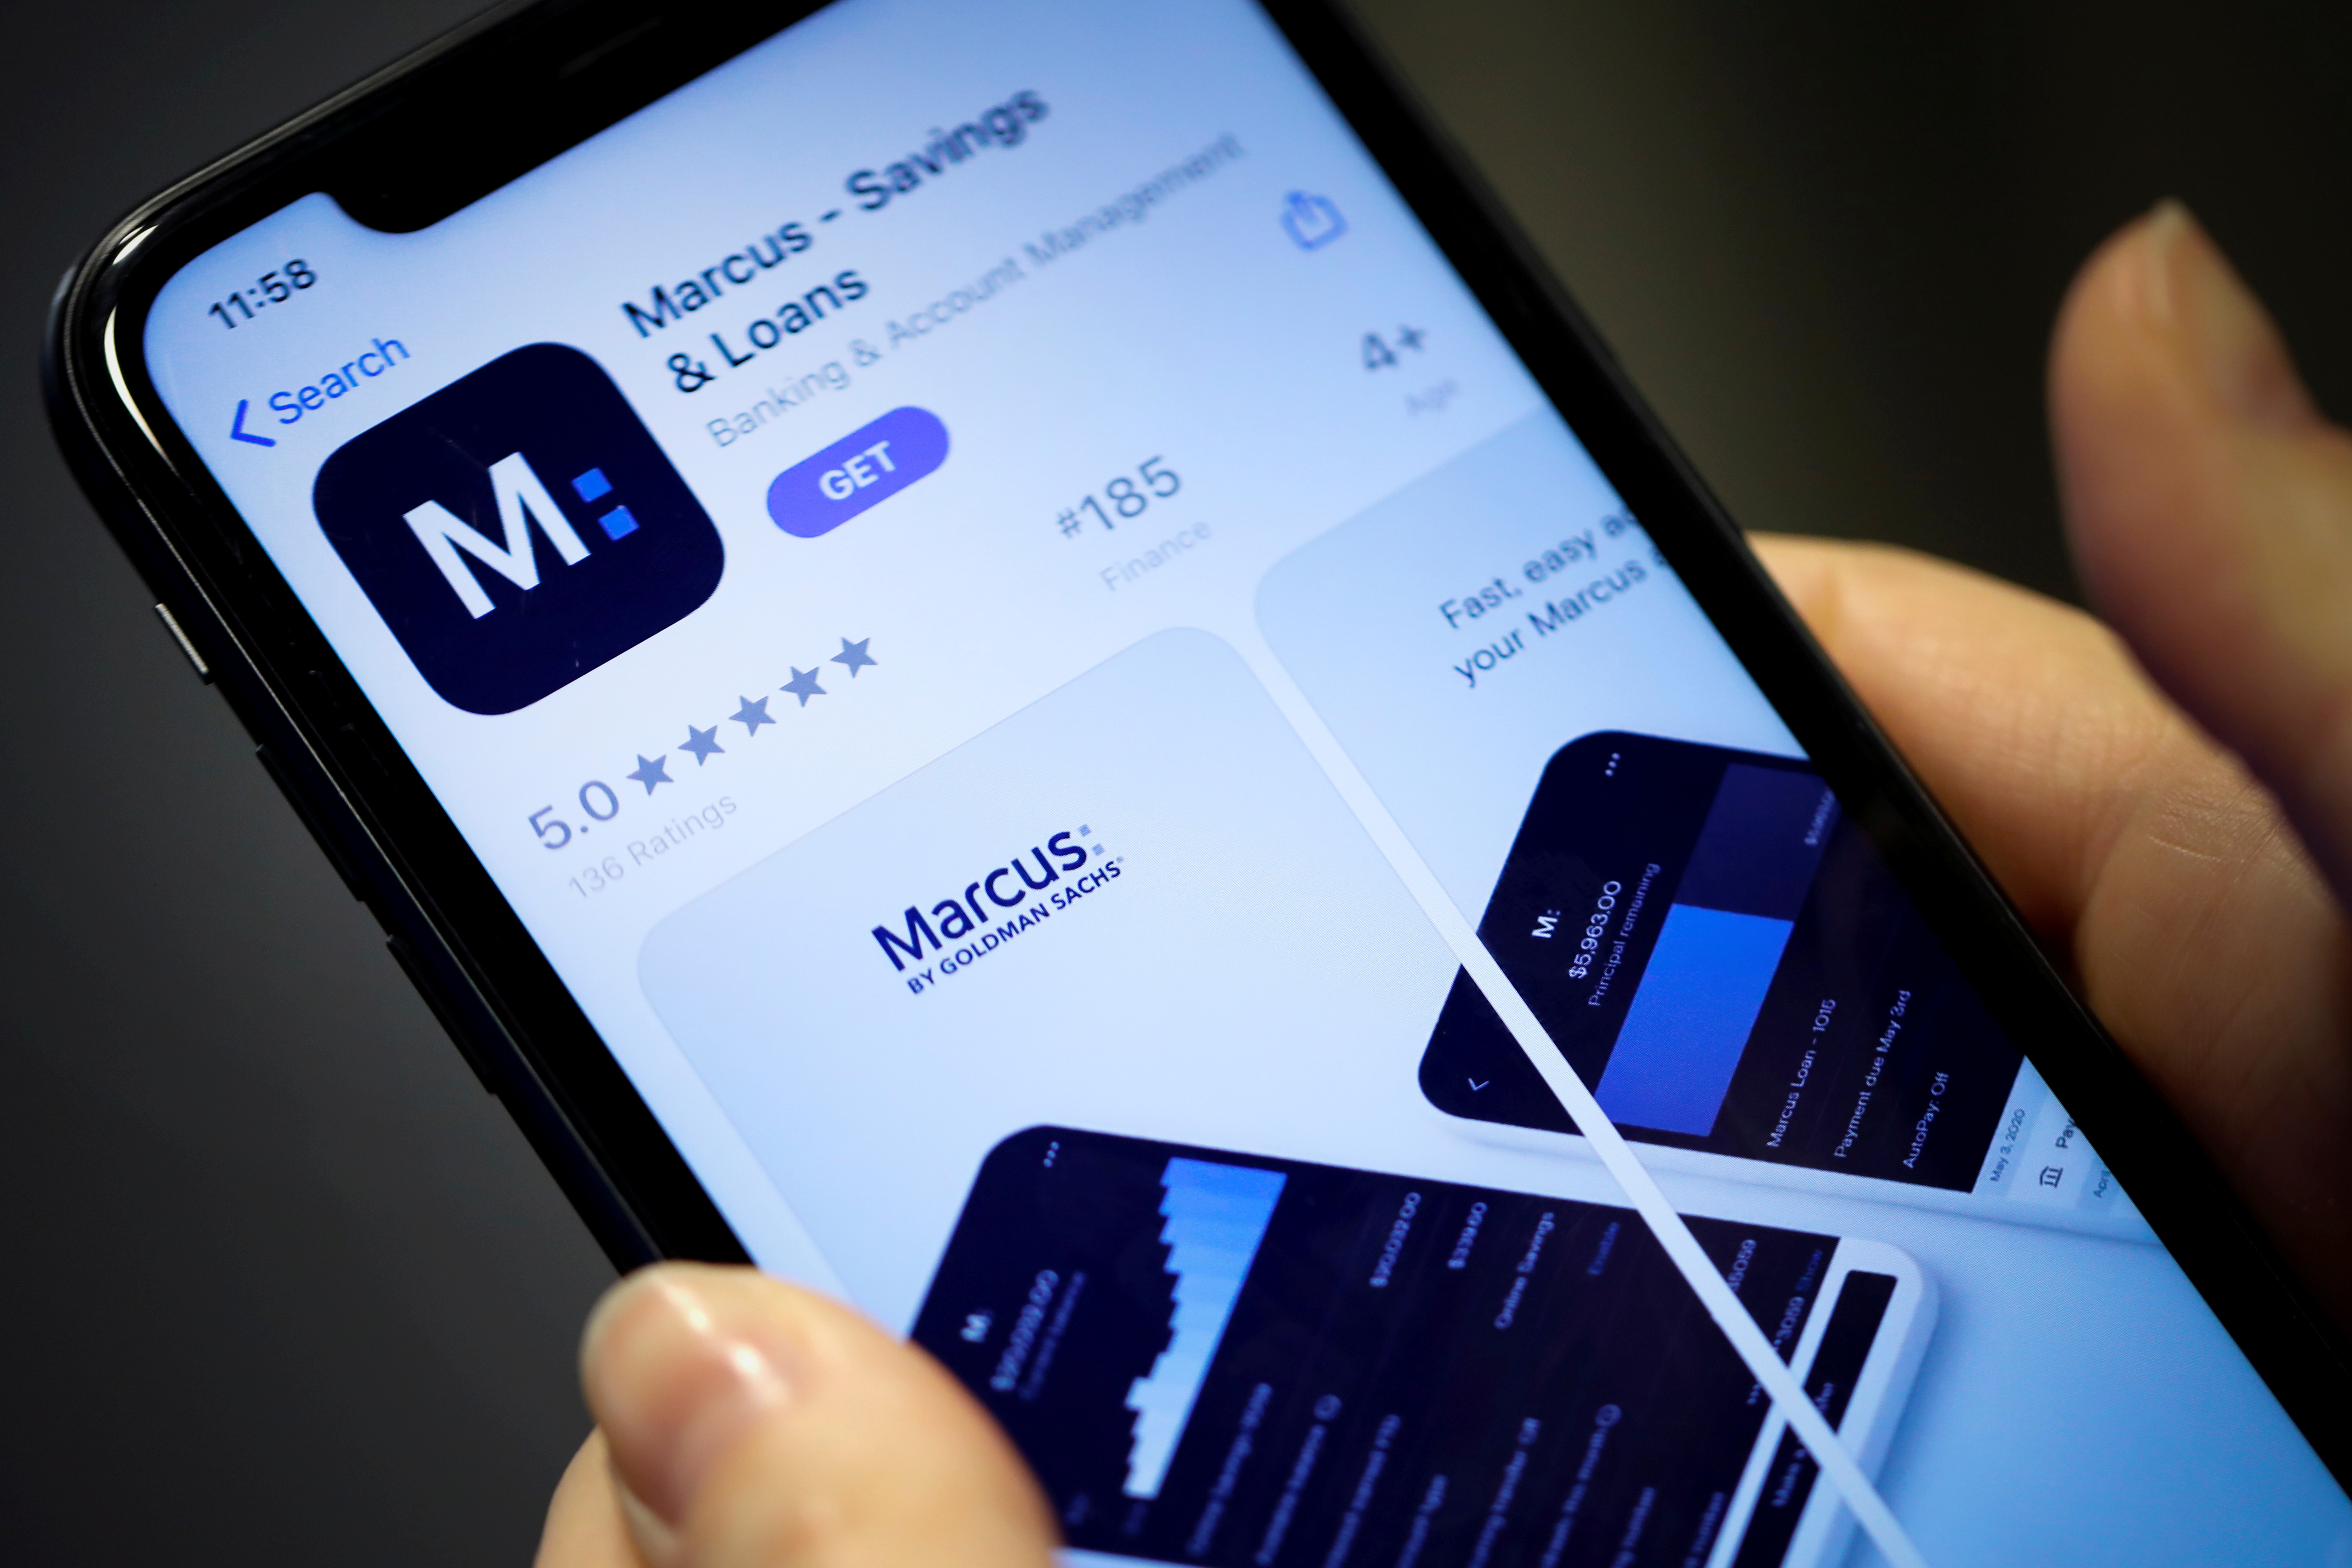 A woman looks at Marcus, a new savings and loans app recently launched by Goldman Sachs in New York, U.S., January 10, 2020. REUTERS/Mike Segar/File Photo